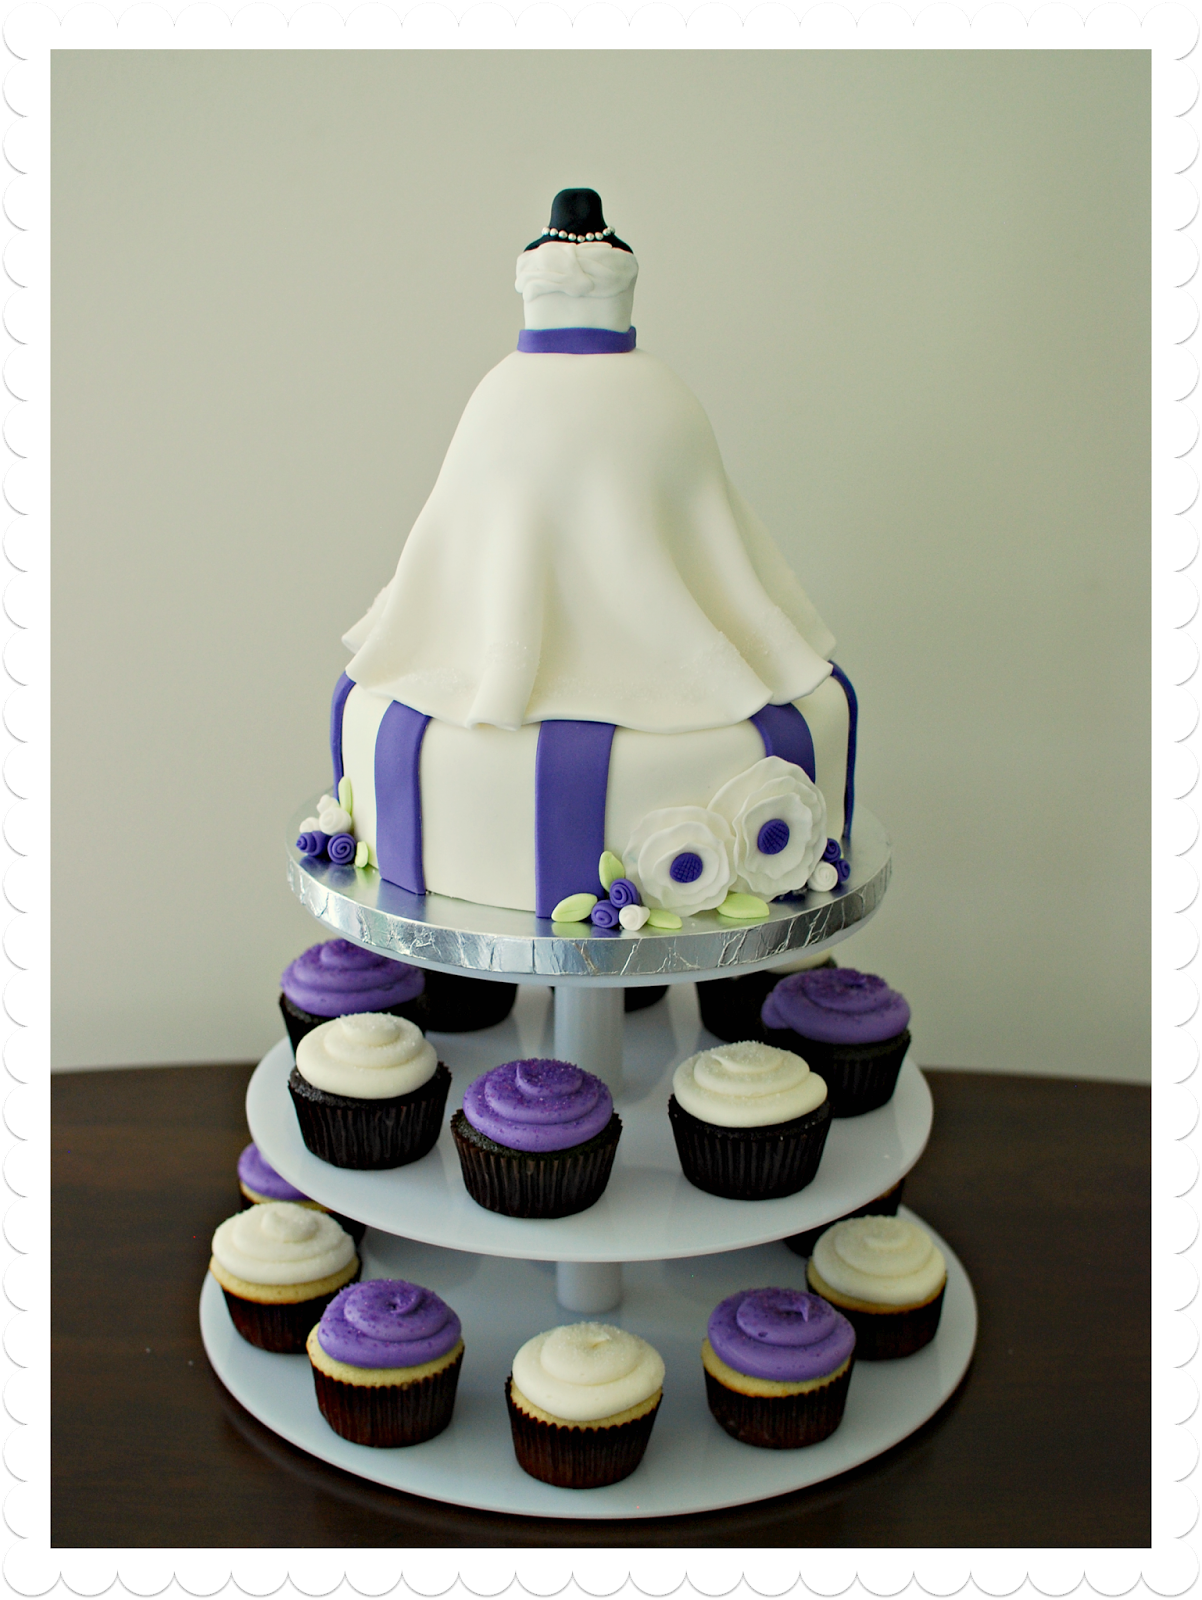 Wedding dress bridal shower cake + cupcakes by Snacky French